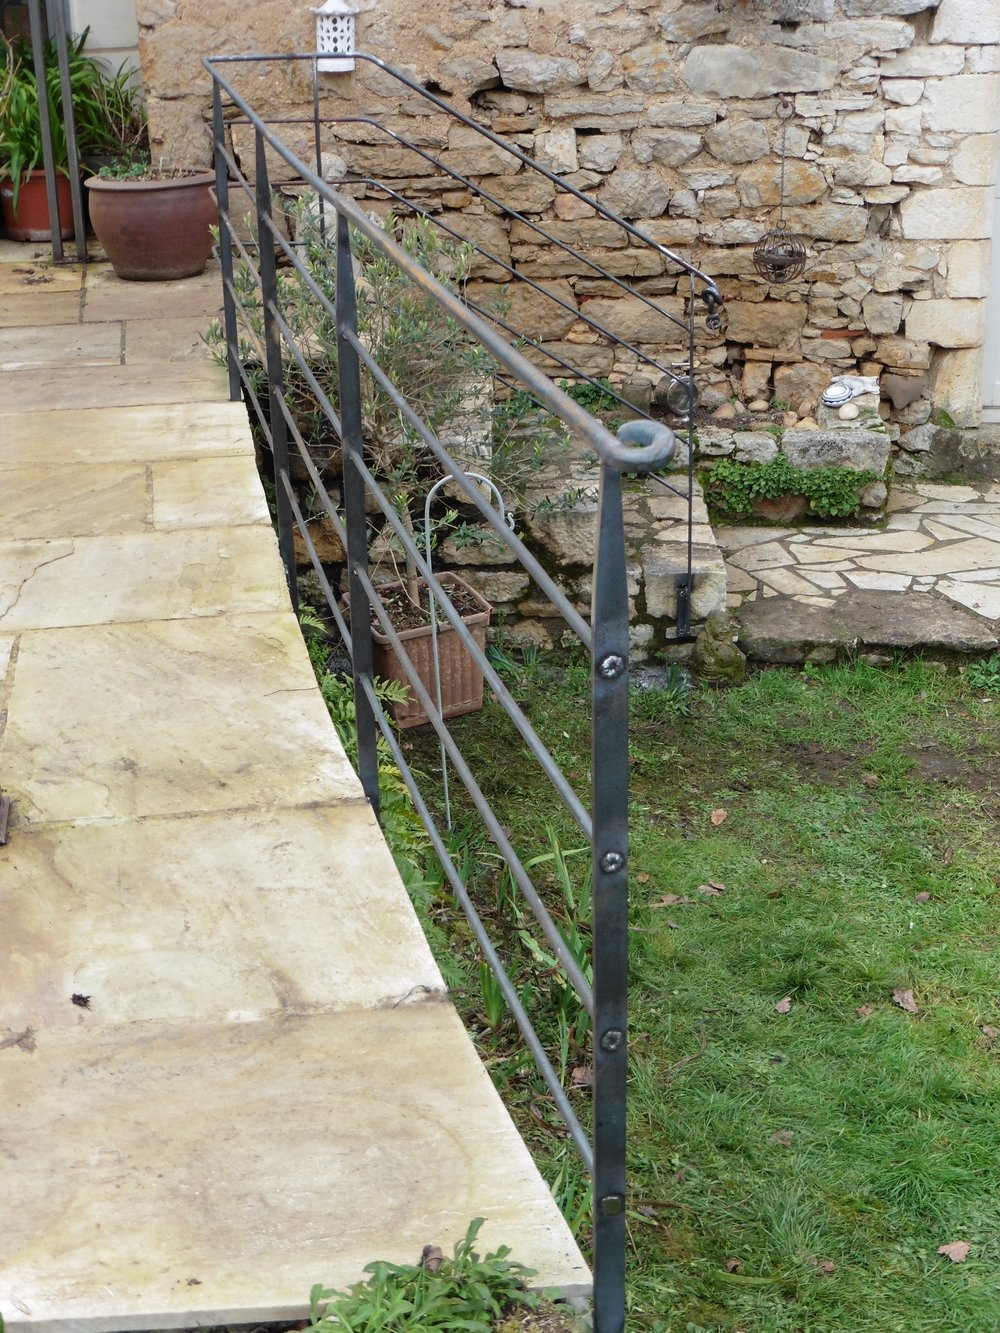 Simple but stylish railings at a lovely old water mill.